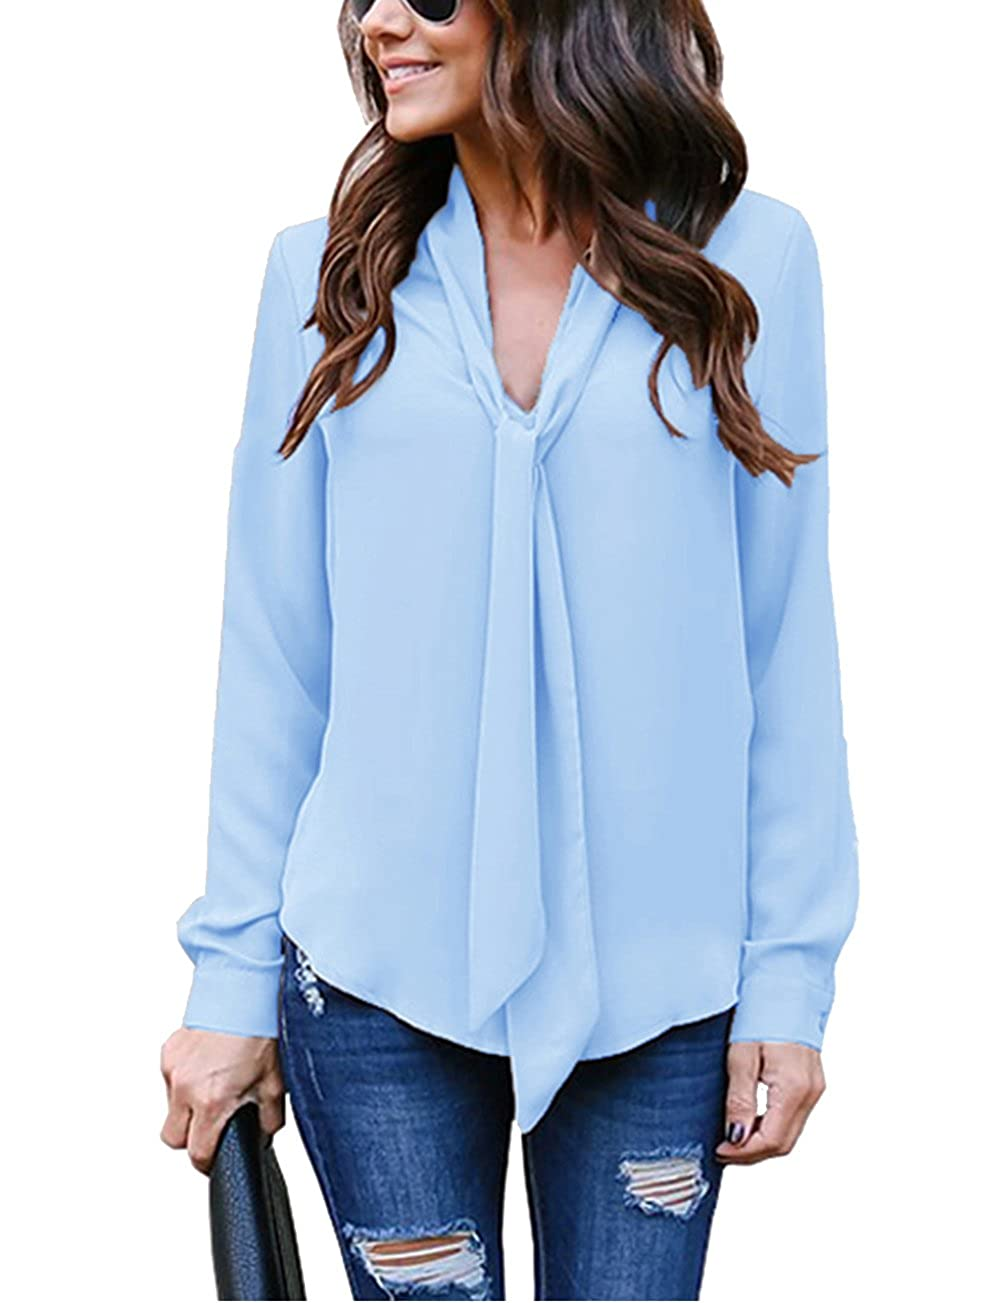 Flying Rabbit Women's Cuffed Long Sleeve Casual V Neck Chiffon Blouses Tops Tie